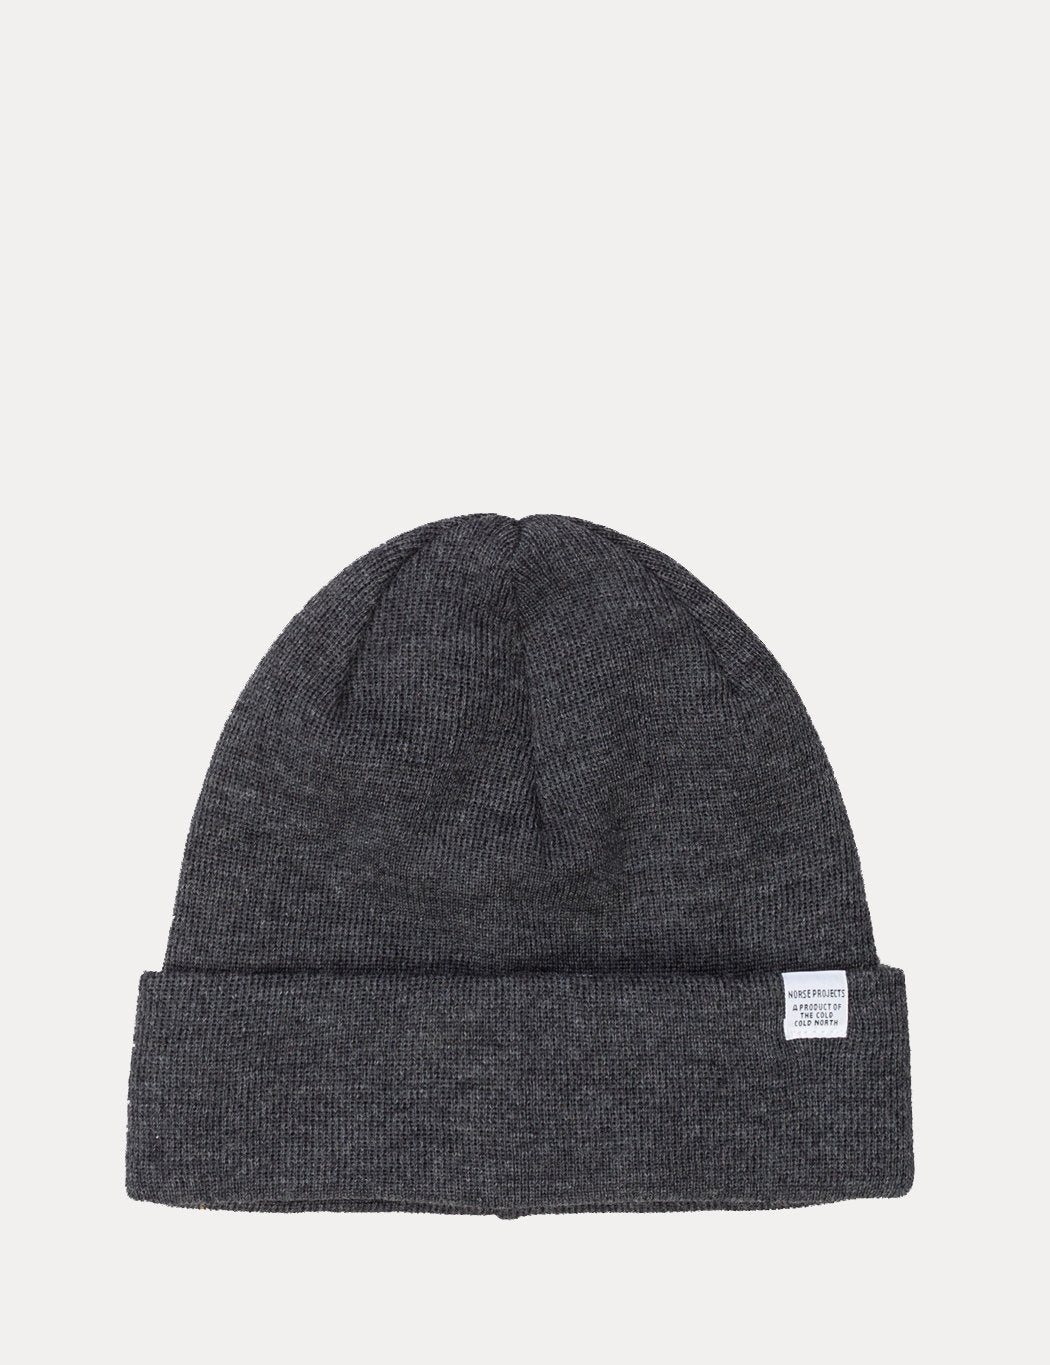 Norse Projects Top Beanie Hat (Wool) - Charcoal Grey Melange